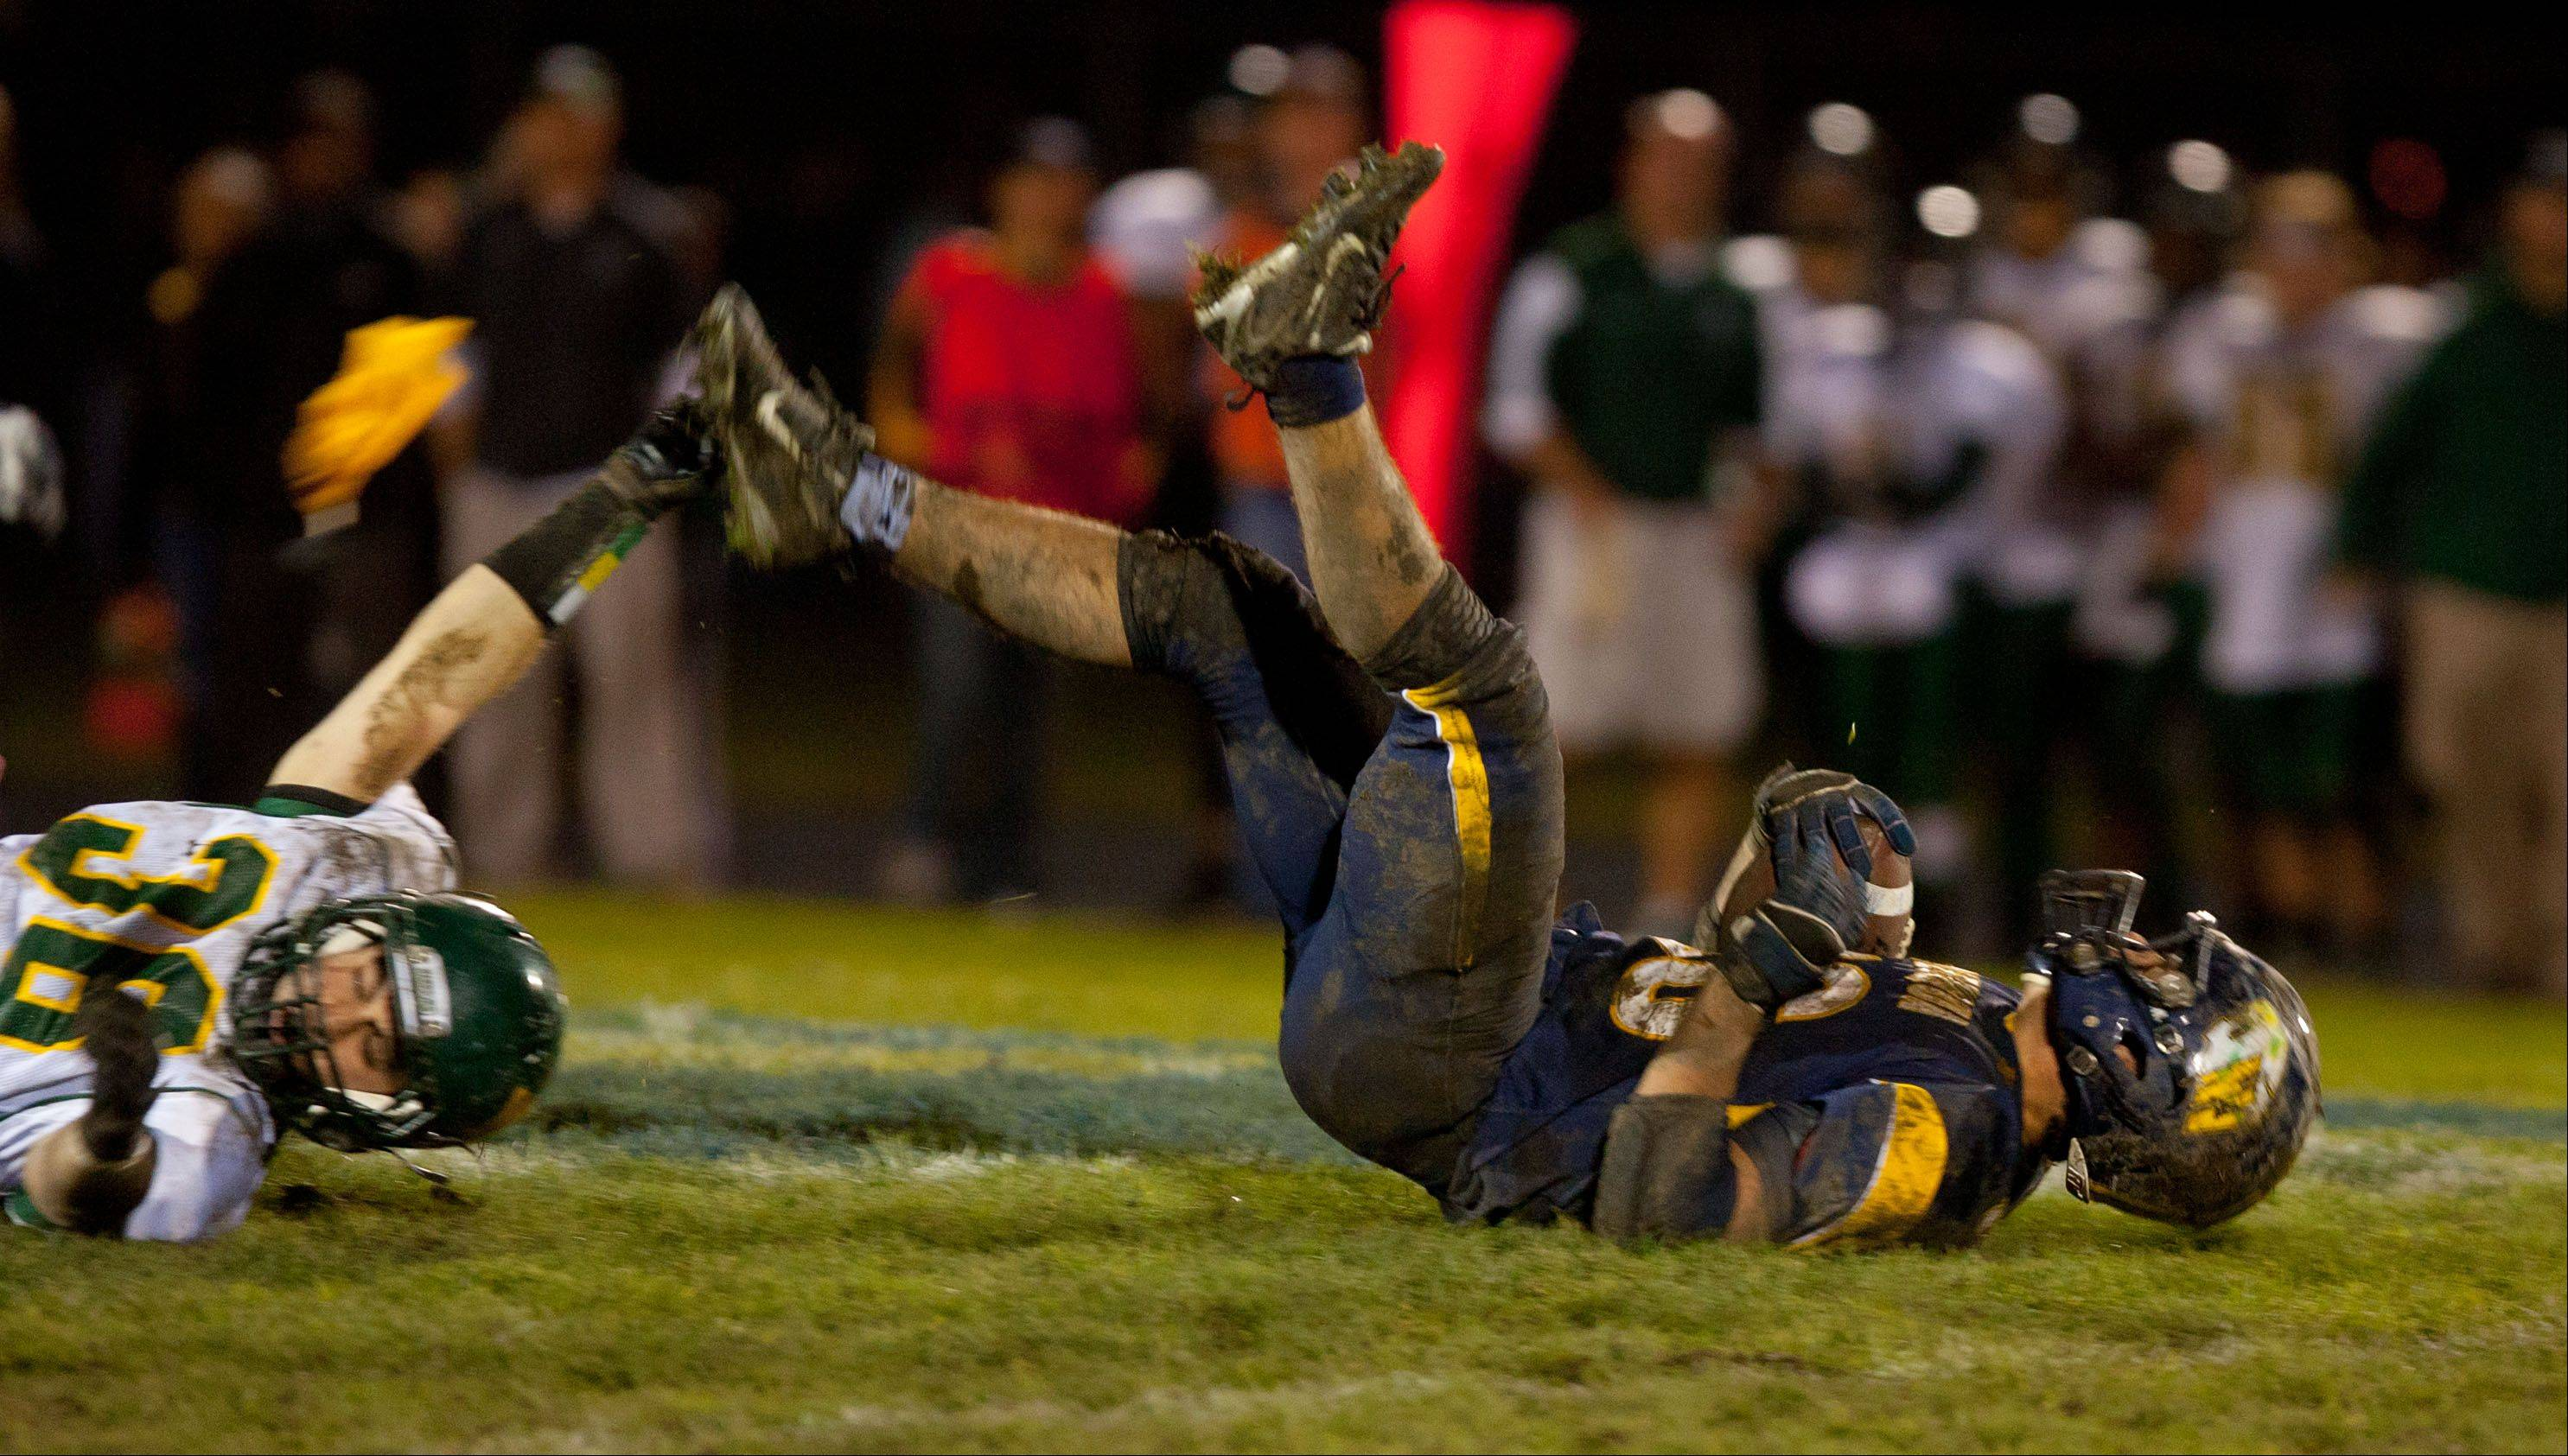 Neuqua Valley hosted Waubonsie Valley Saturday night for IHSA state quarterfinal football action at Neuqua Valley in Naperville.